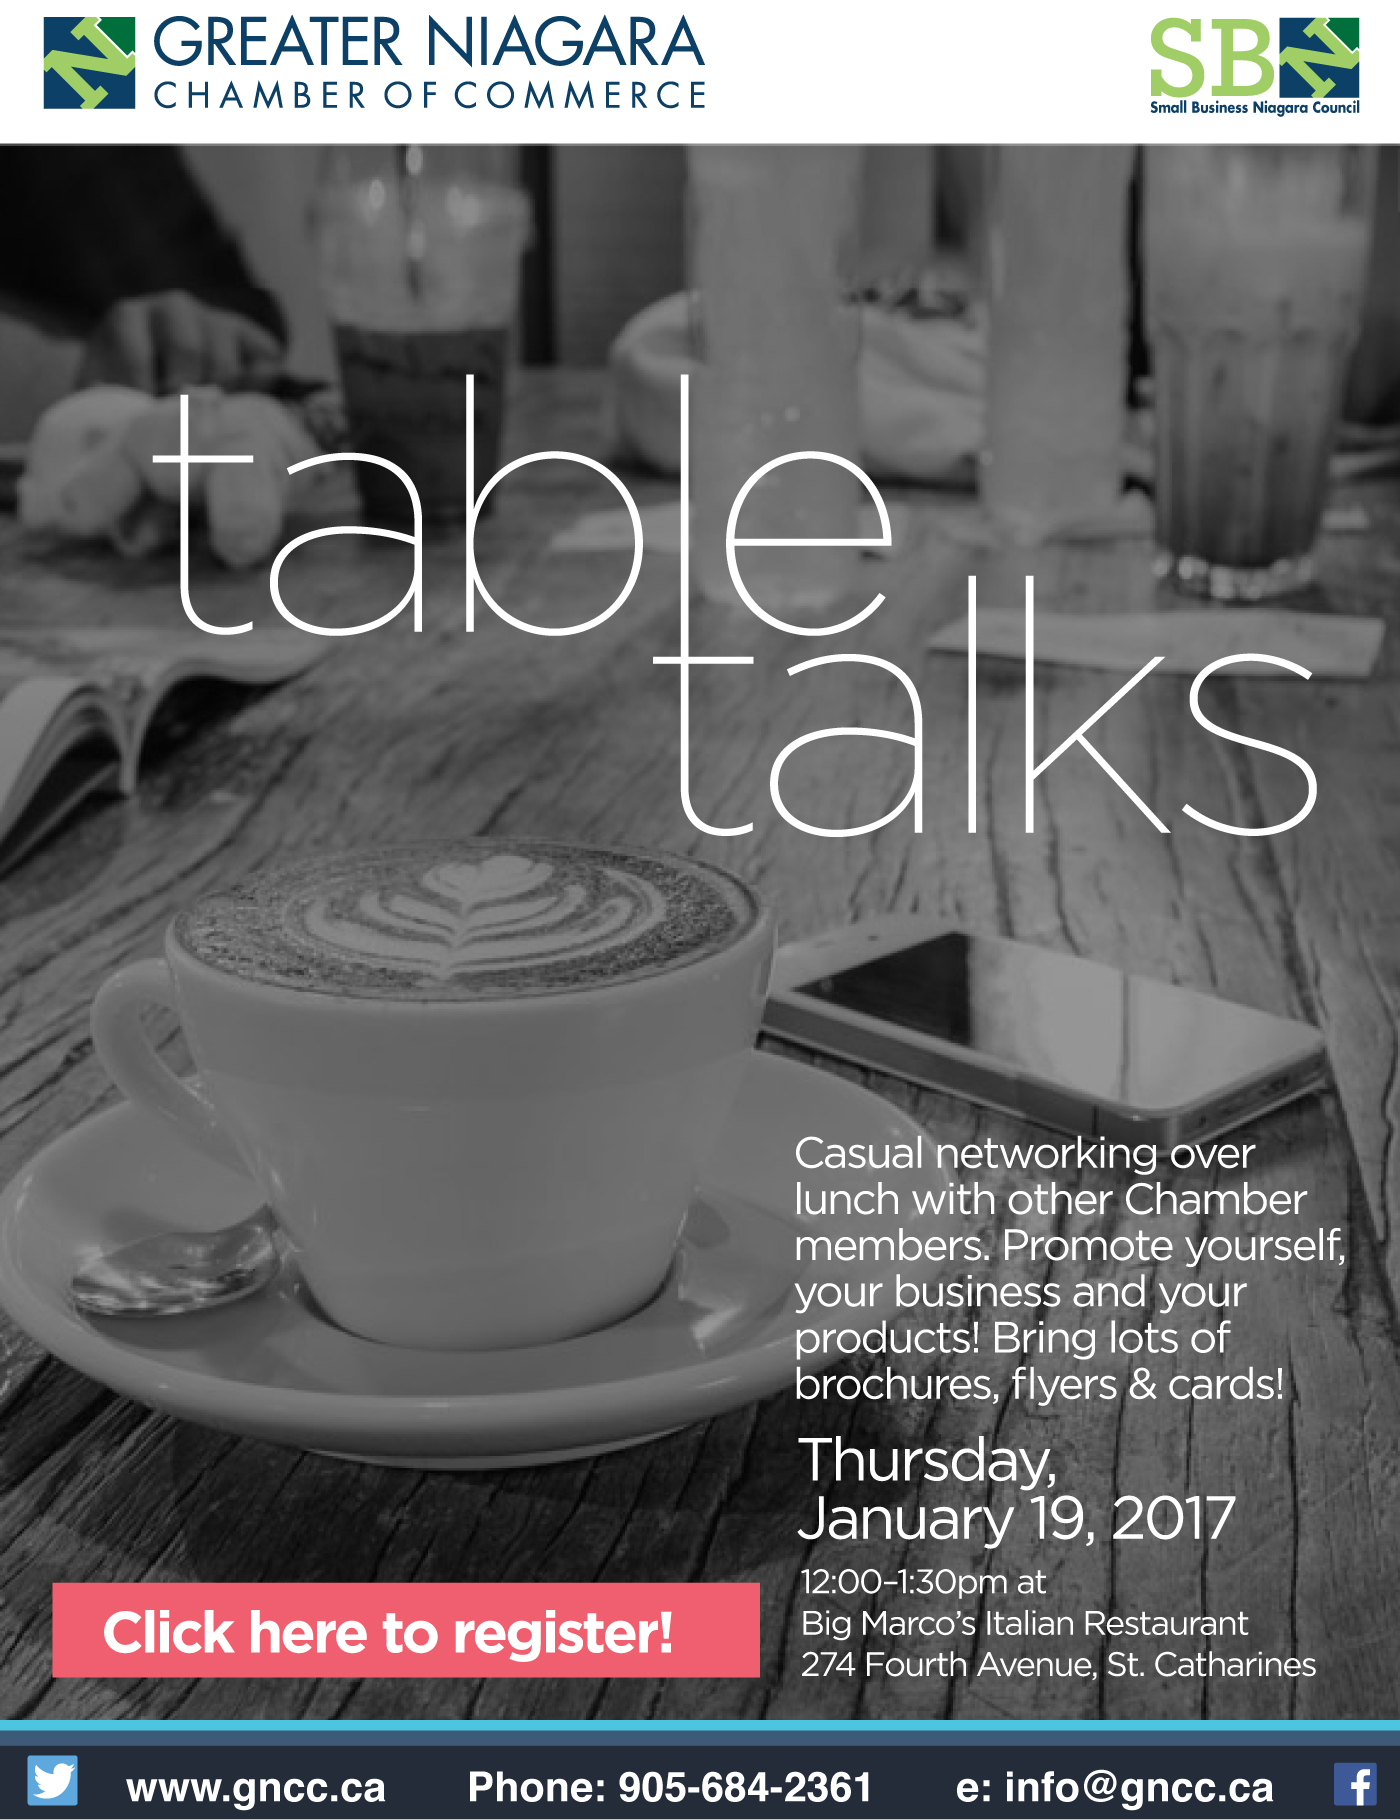 Table Talks - Casual networking over lunch with other Chamber members. Promote yourself, your business and your products! Bring lots of brochures, flyers & cards!